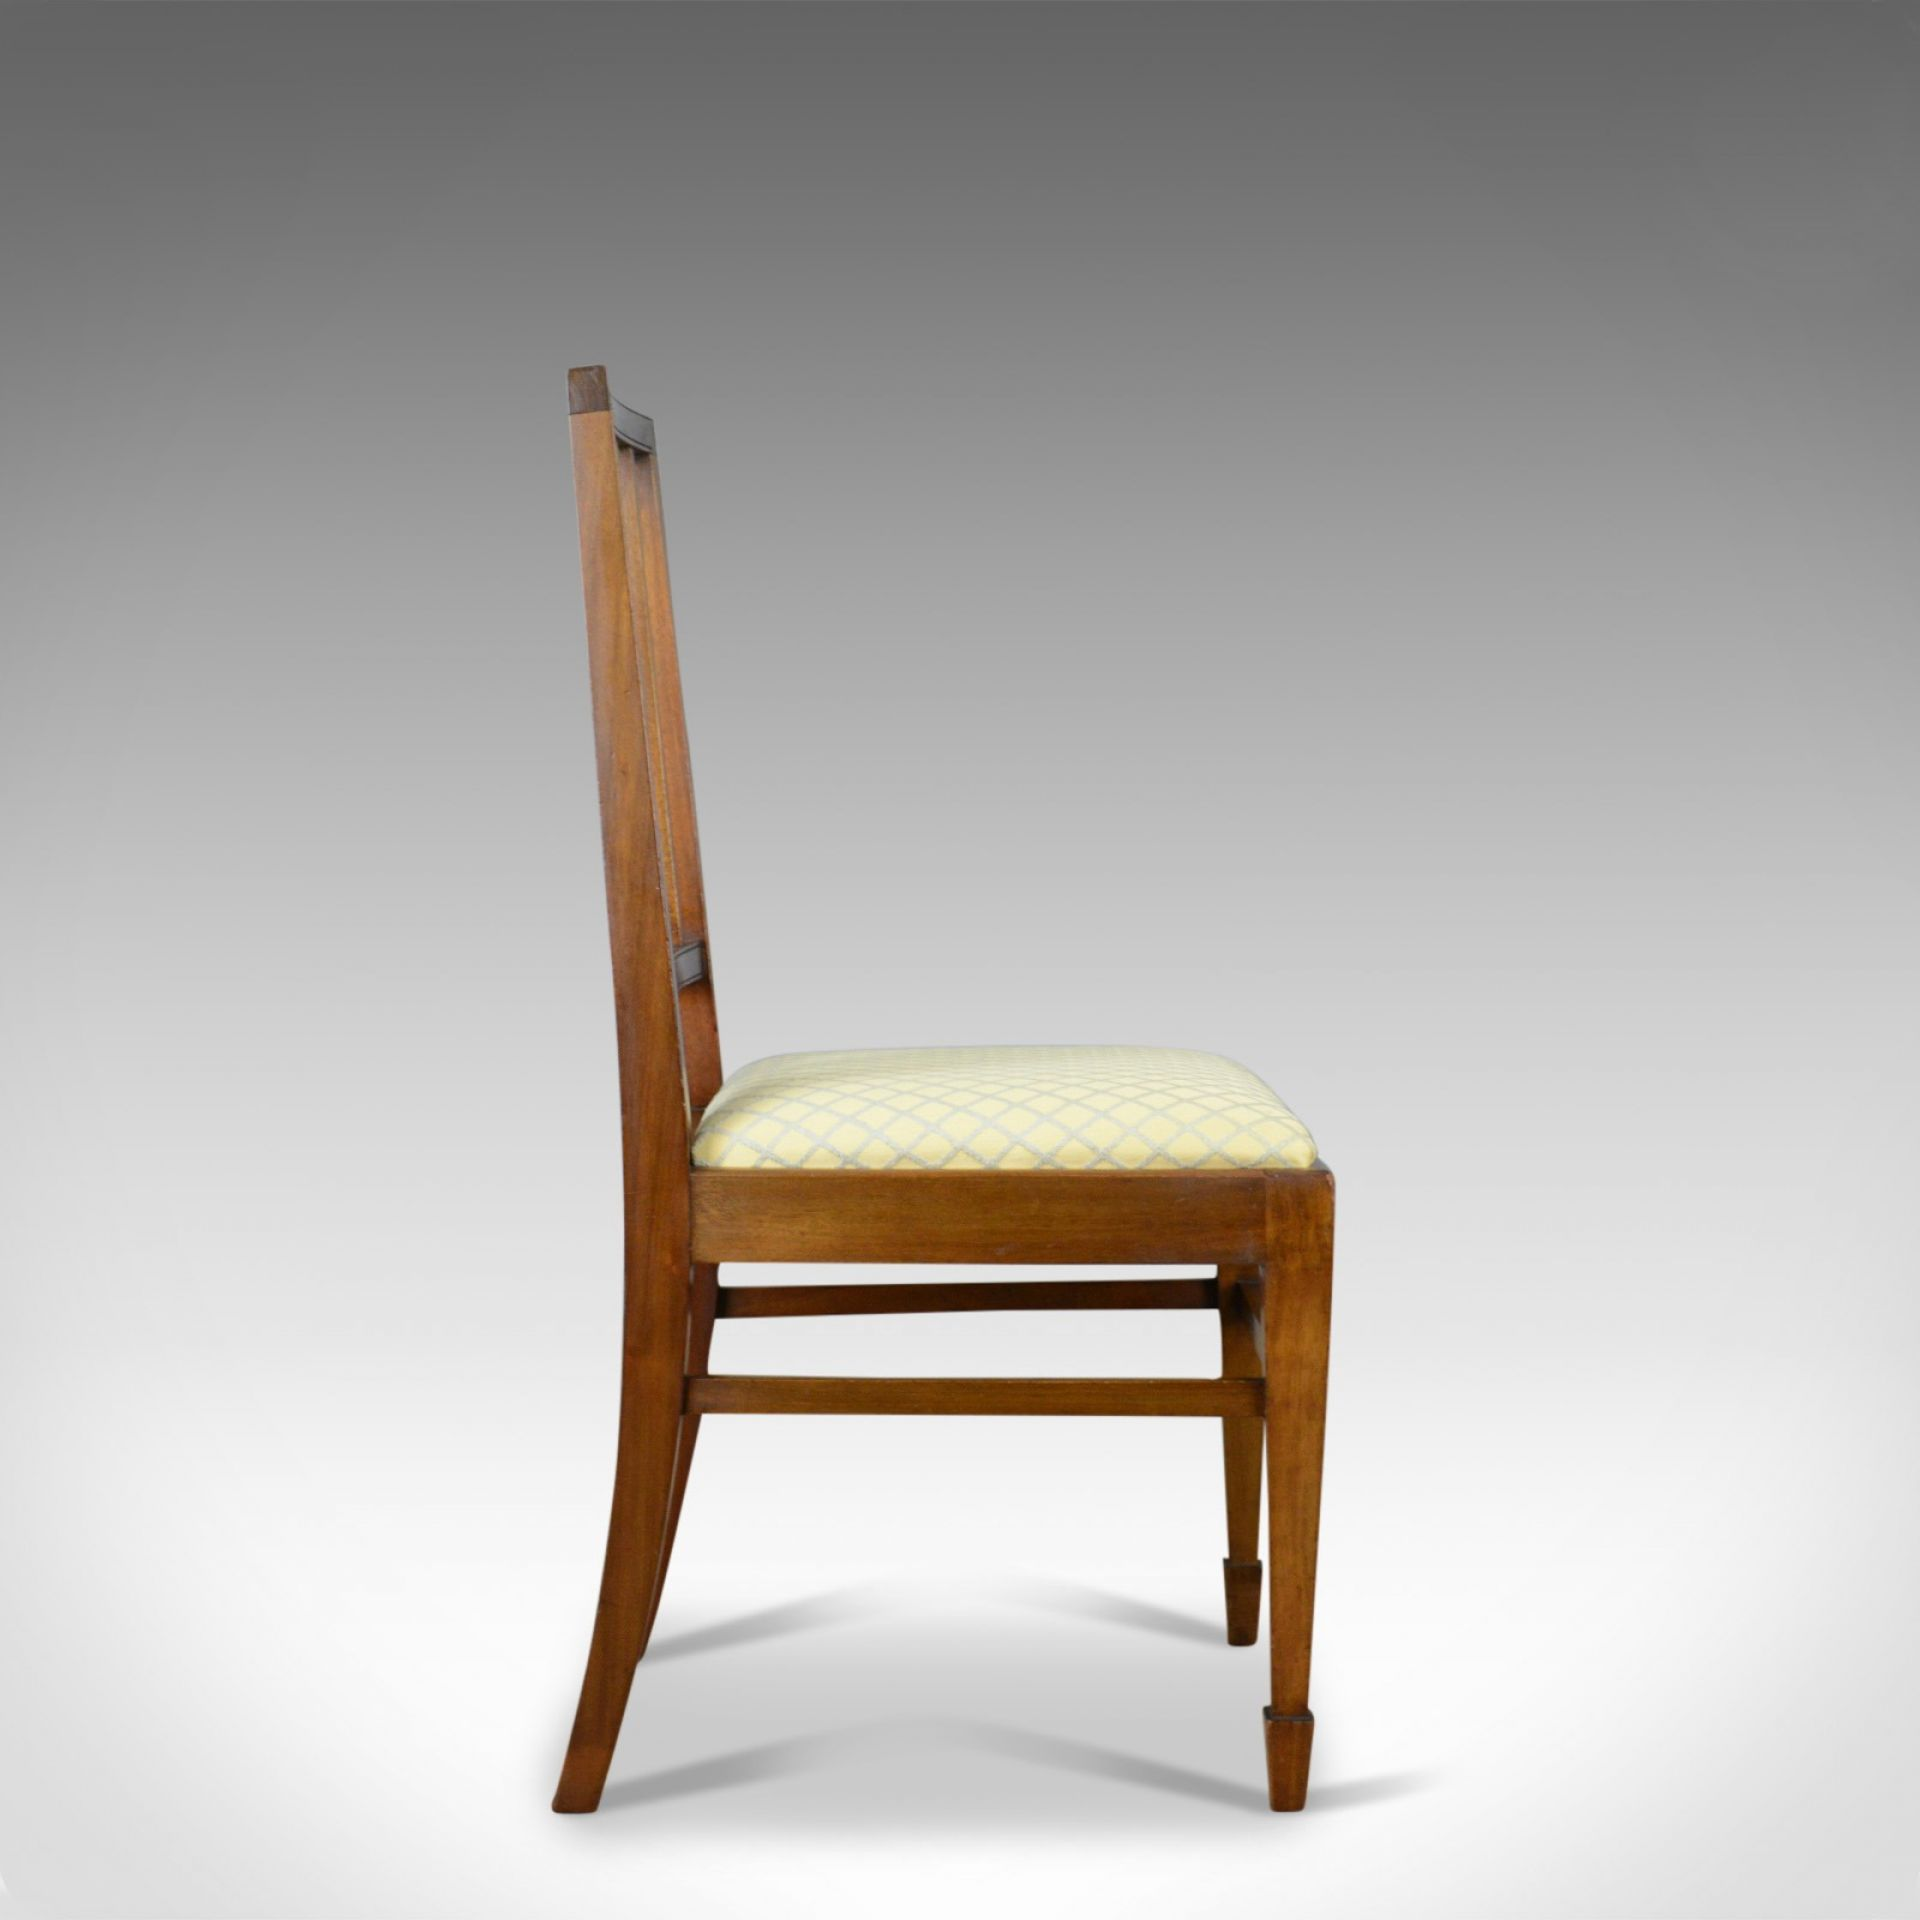 Set of Four Antique Dining Chairs, Mahogany, Edwardian Sheraton Revival c.1910